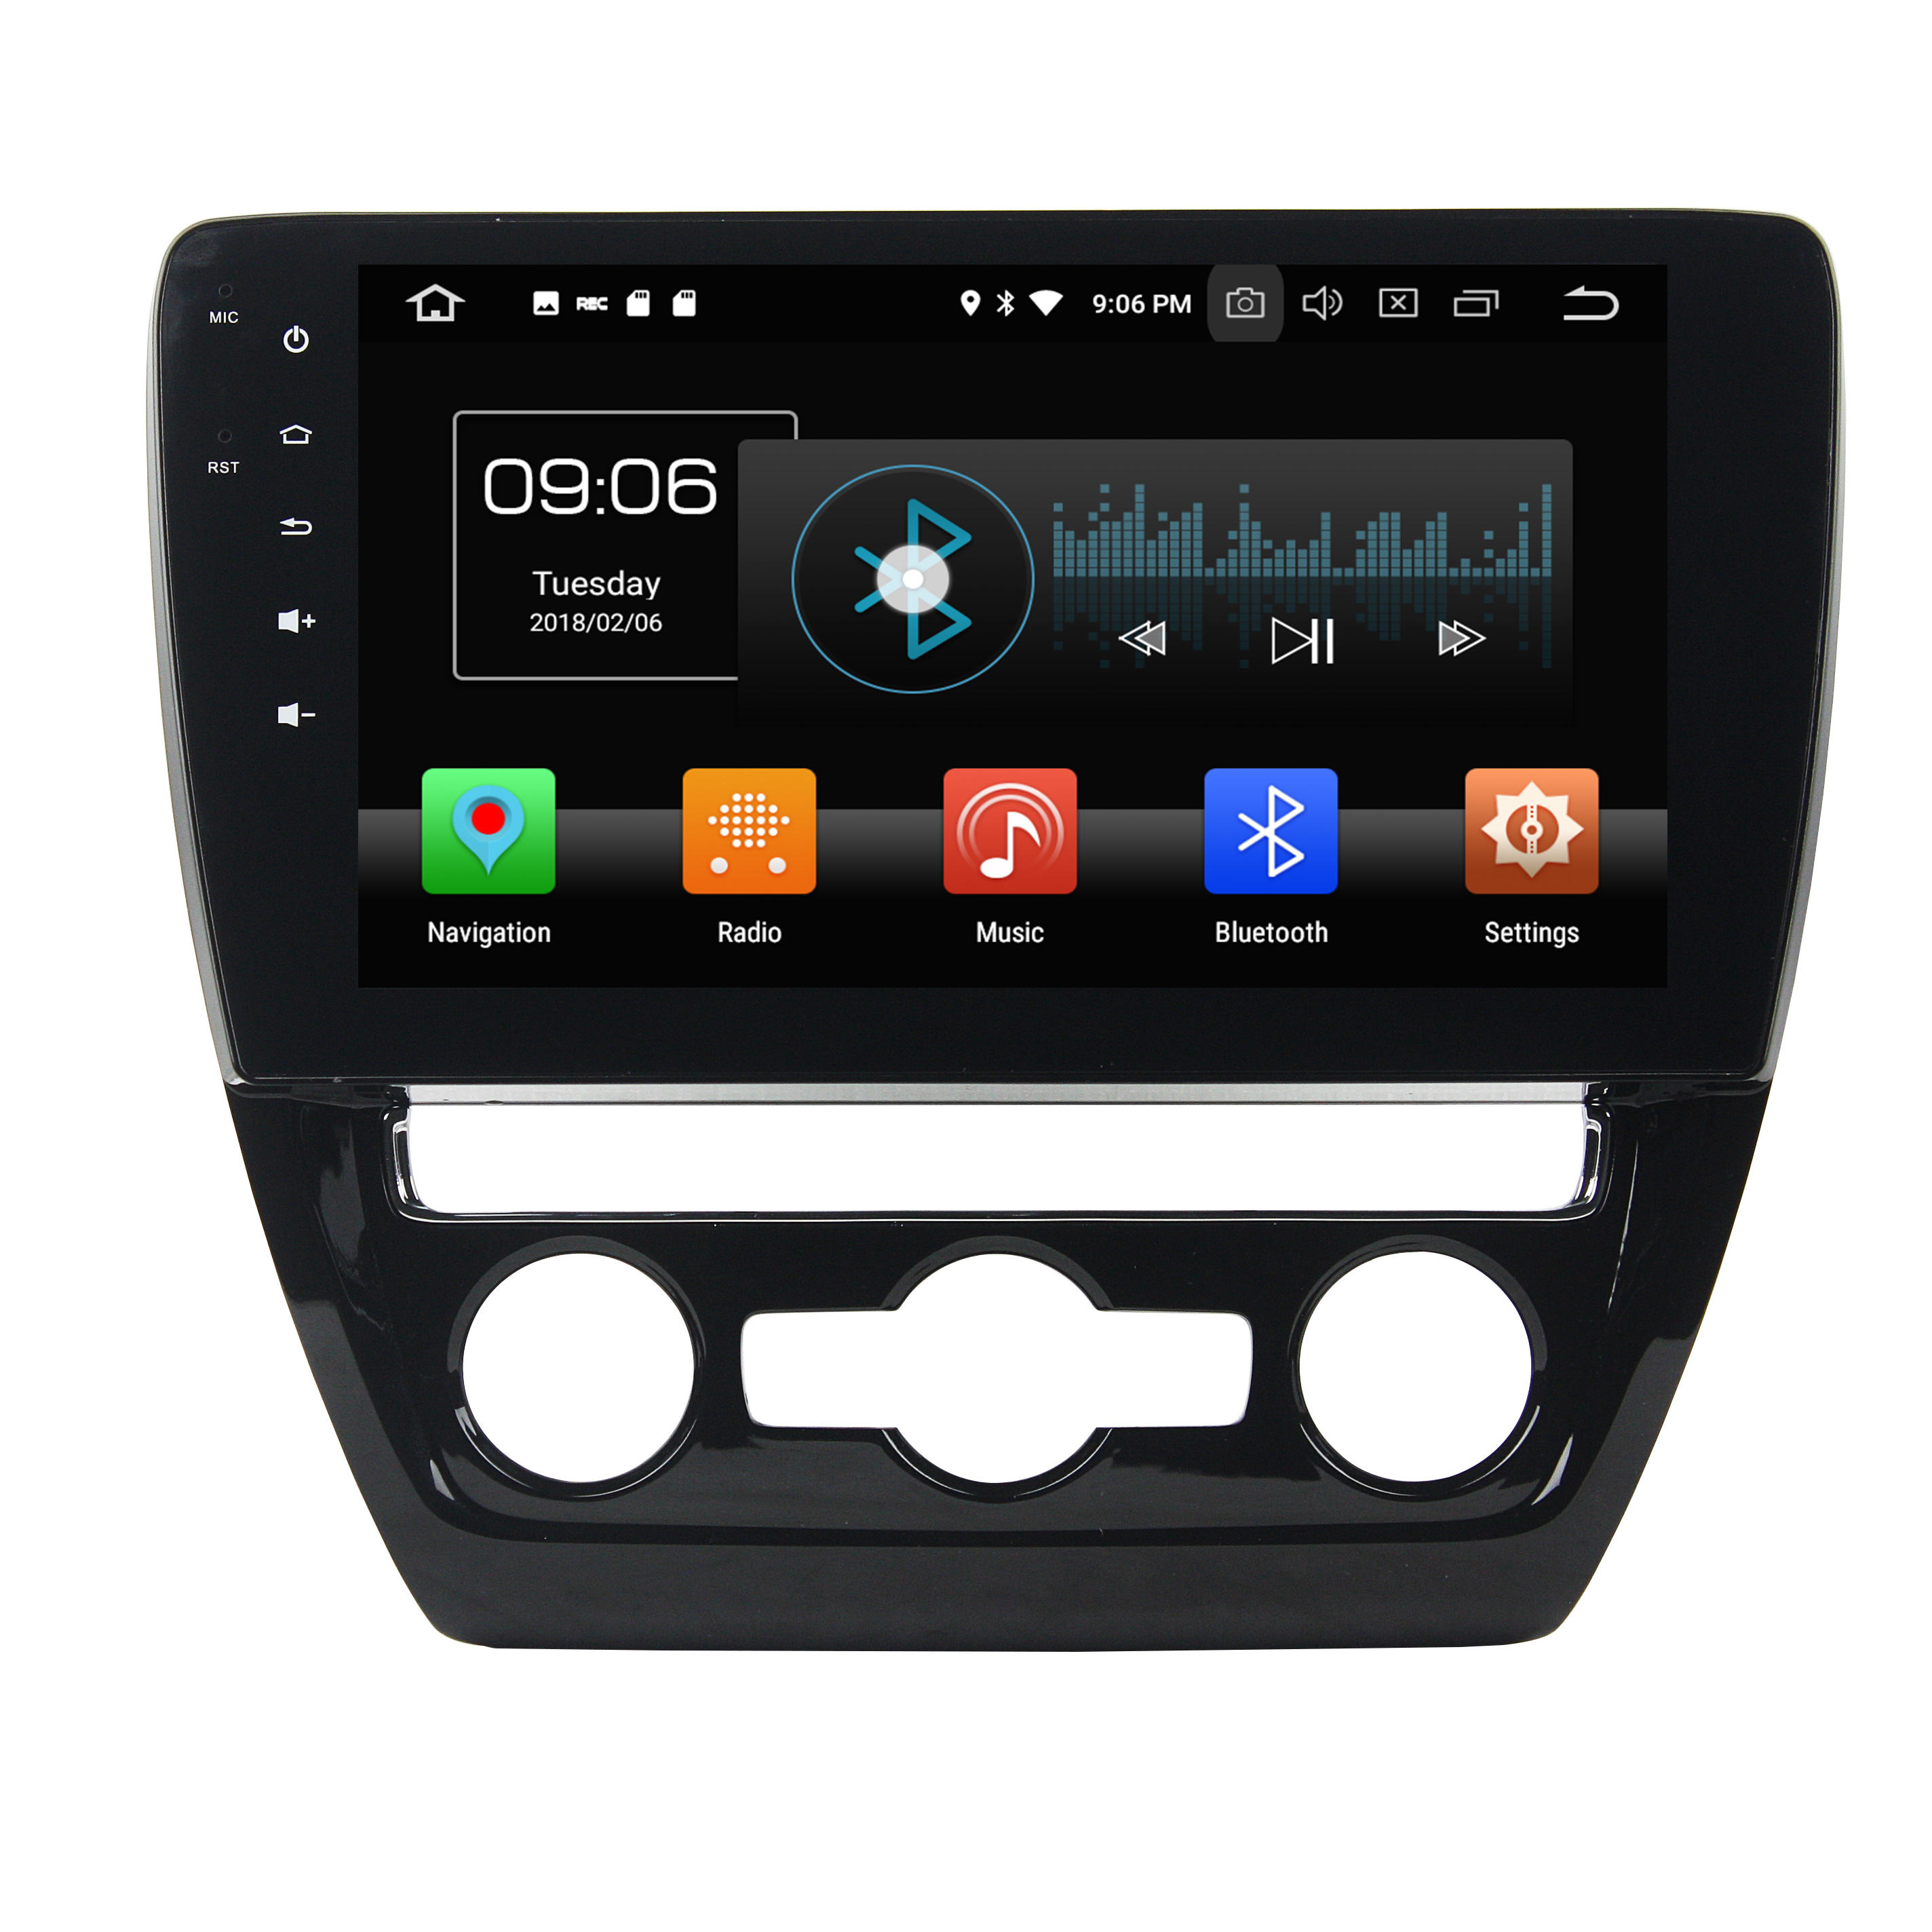 KD-1013 V W SAGITAR 2015-2016 Android 10.0 PX4 4 Core 2G 16G Multimedia Car Stereo Receiver and Double Din Digital Media